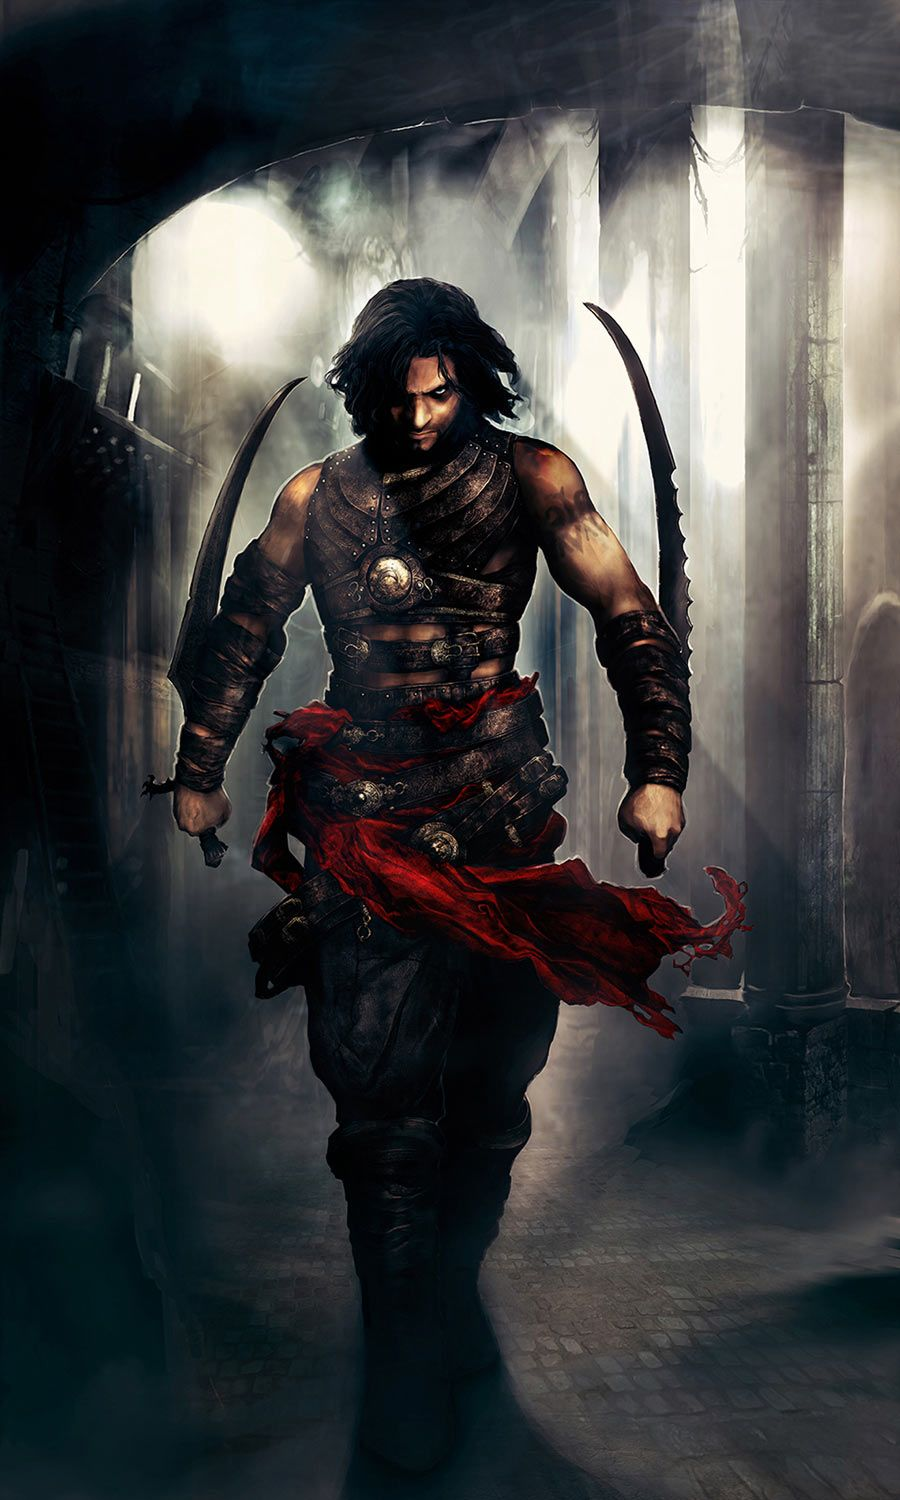 Prince of Persia: Warrior Within | Video Games | Fantasy art, Prince of persia, Fantasy warrior